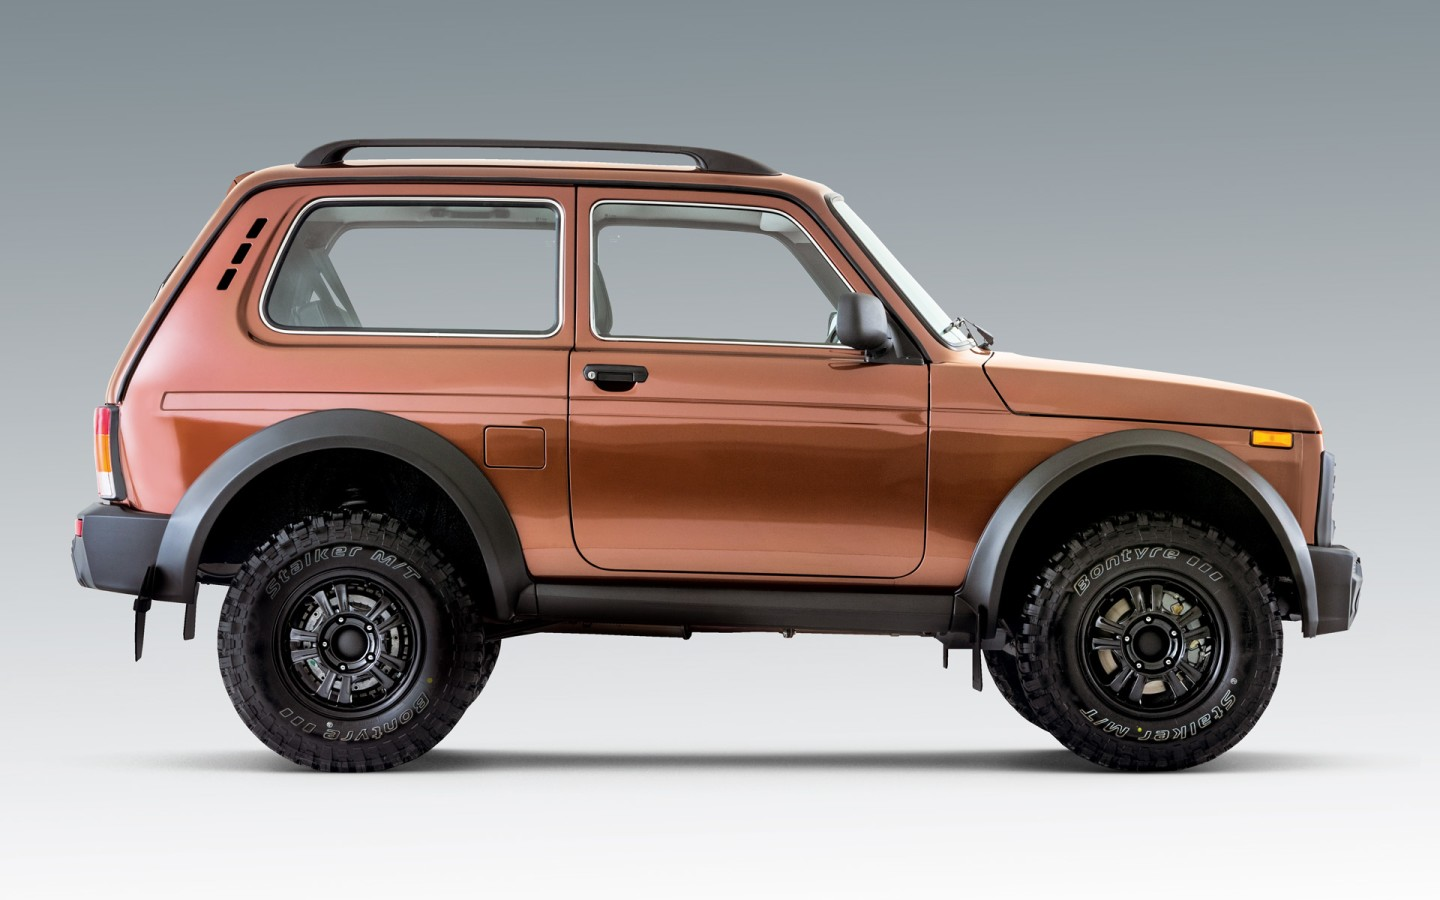 The Bronto is the factory-built off-road-focused version of the Lada 4x4, originally called the Niva